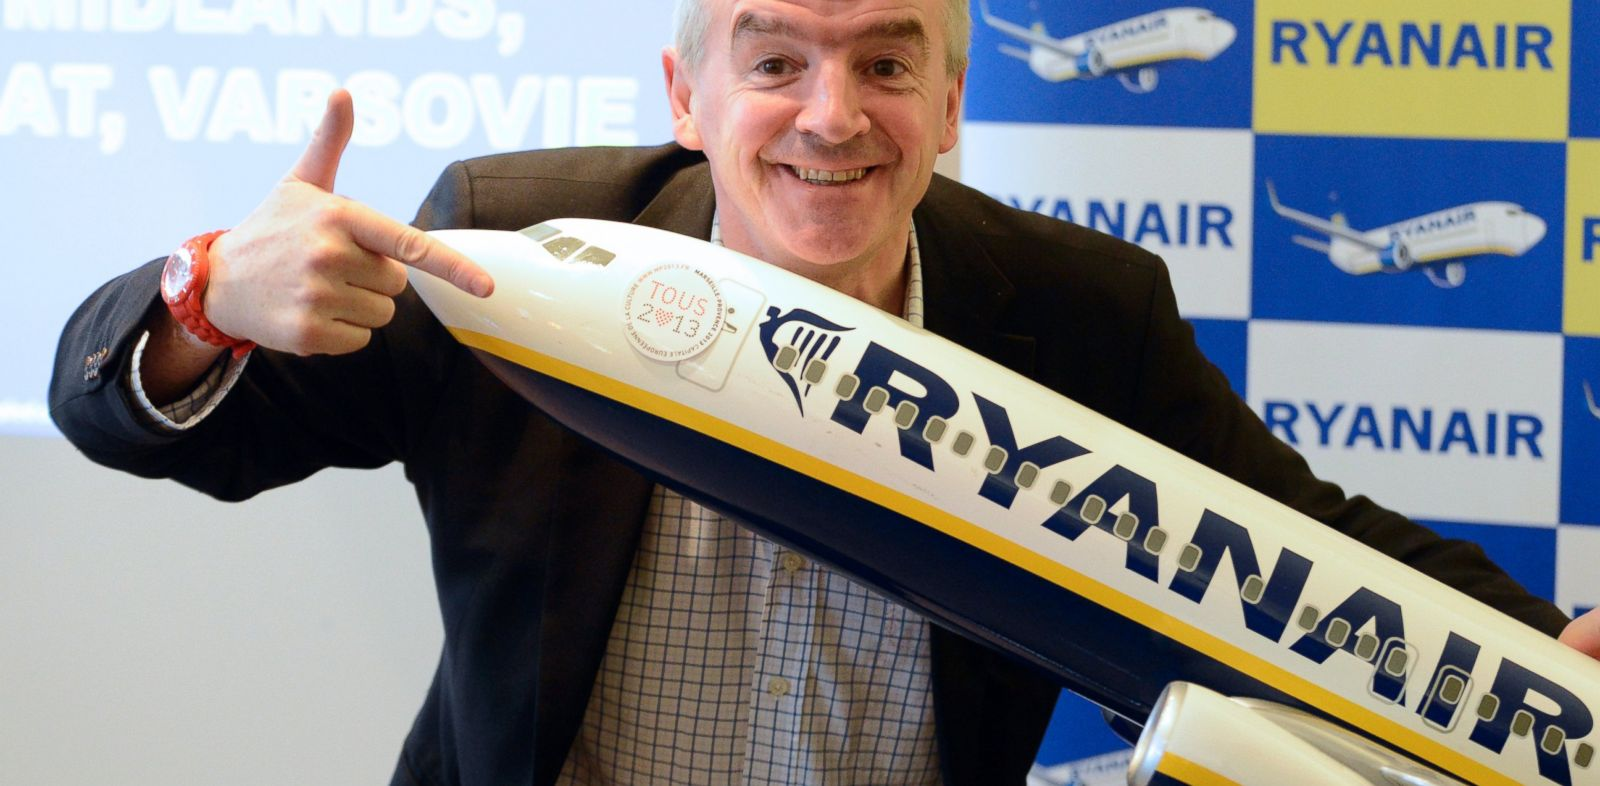 PHOTO: Chief executive officer of Irish airline Ryanair Michael OLeary leans on a model Ryanair airplane, Jan. 16, 2013 during a press conference in Vitrolles, France.